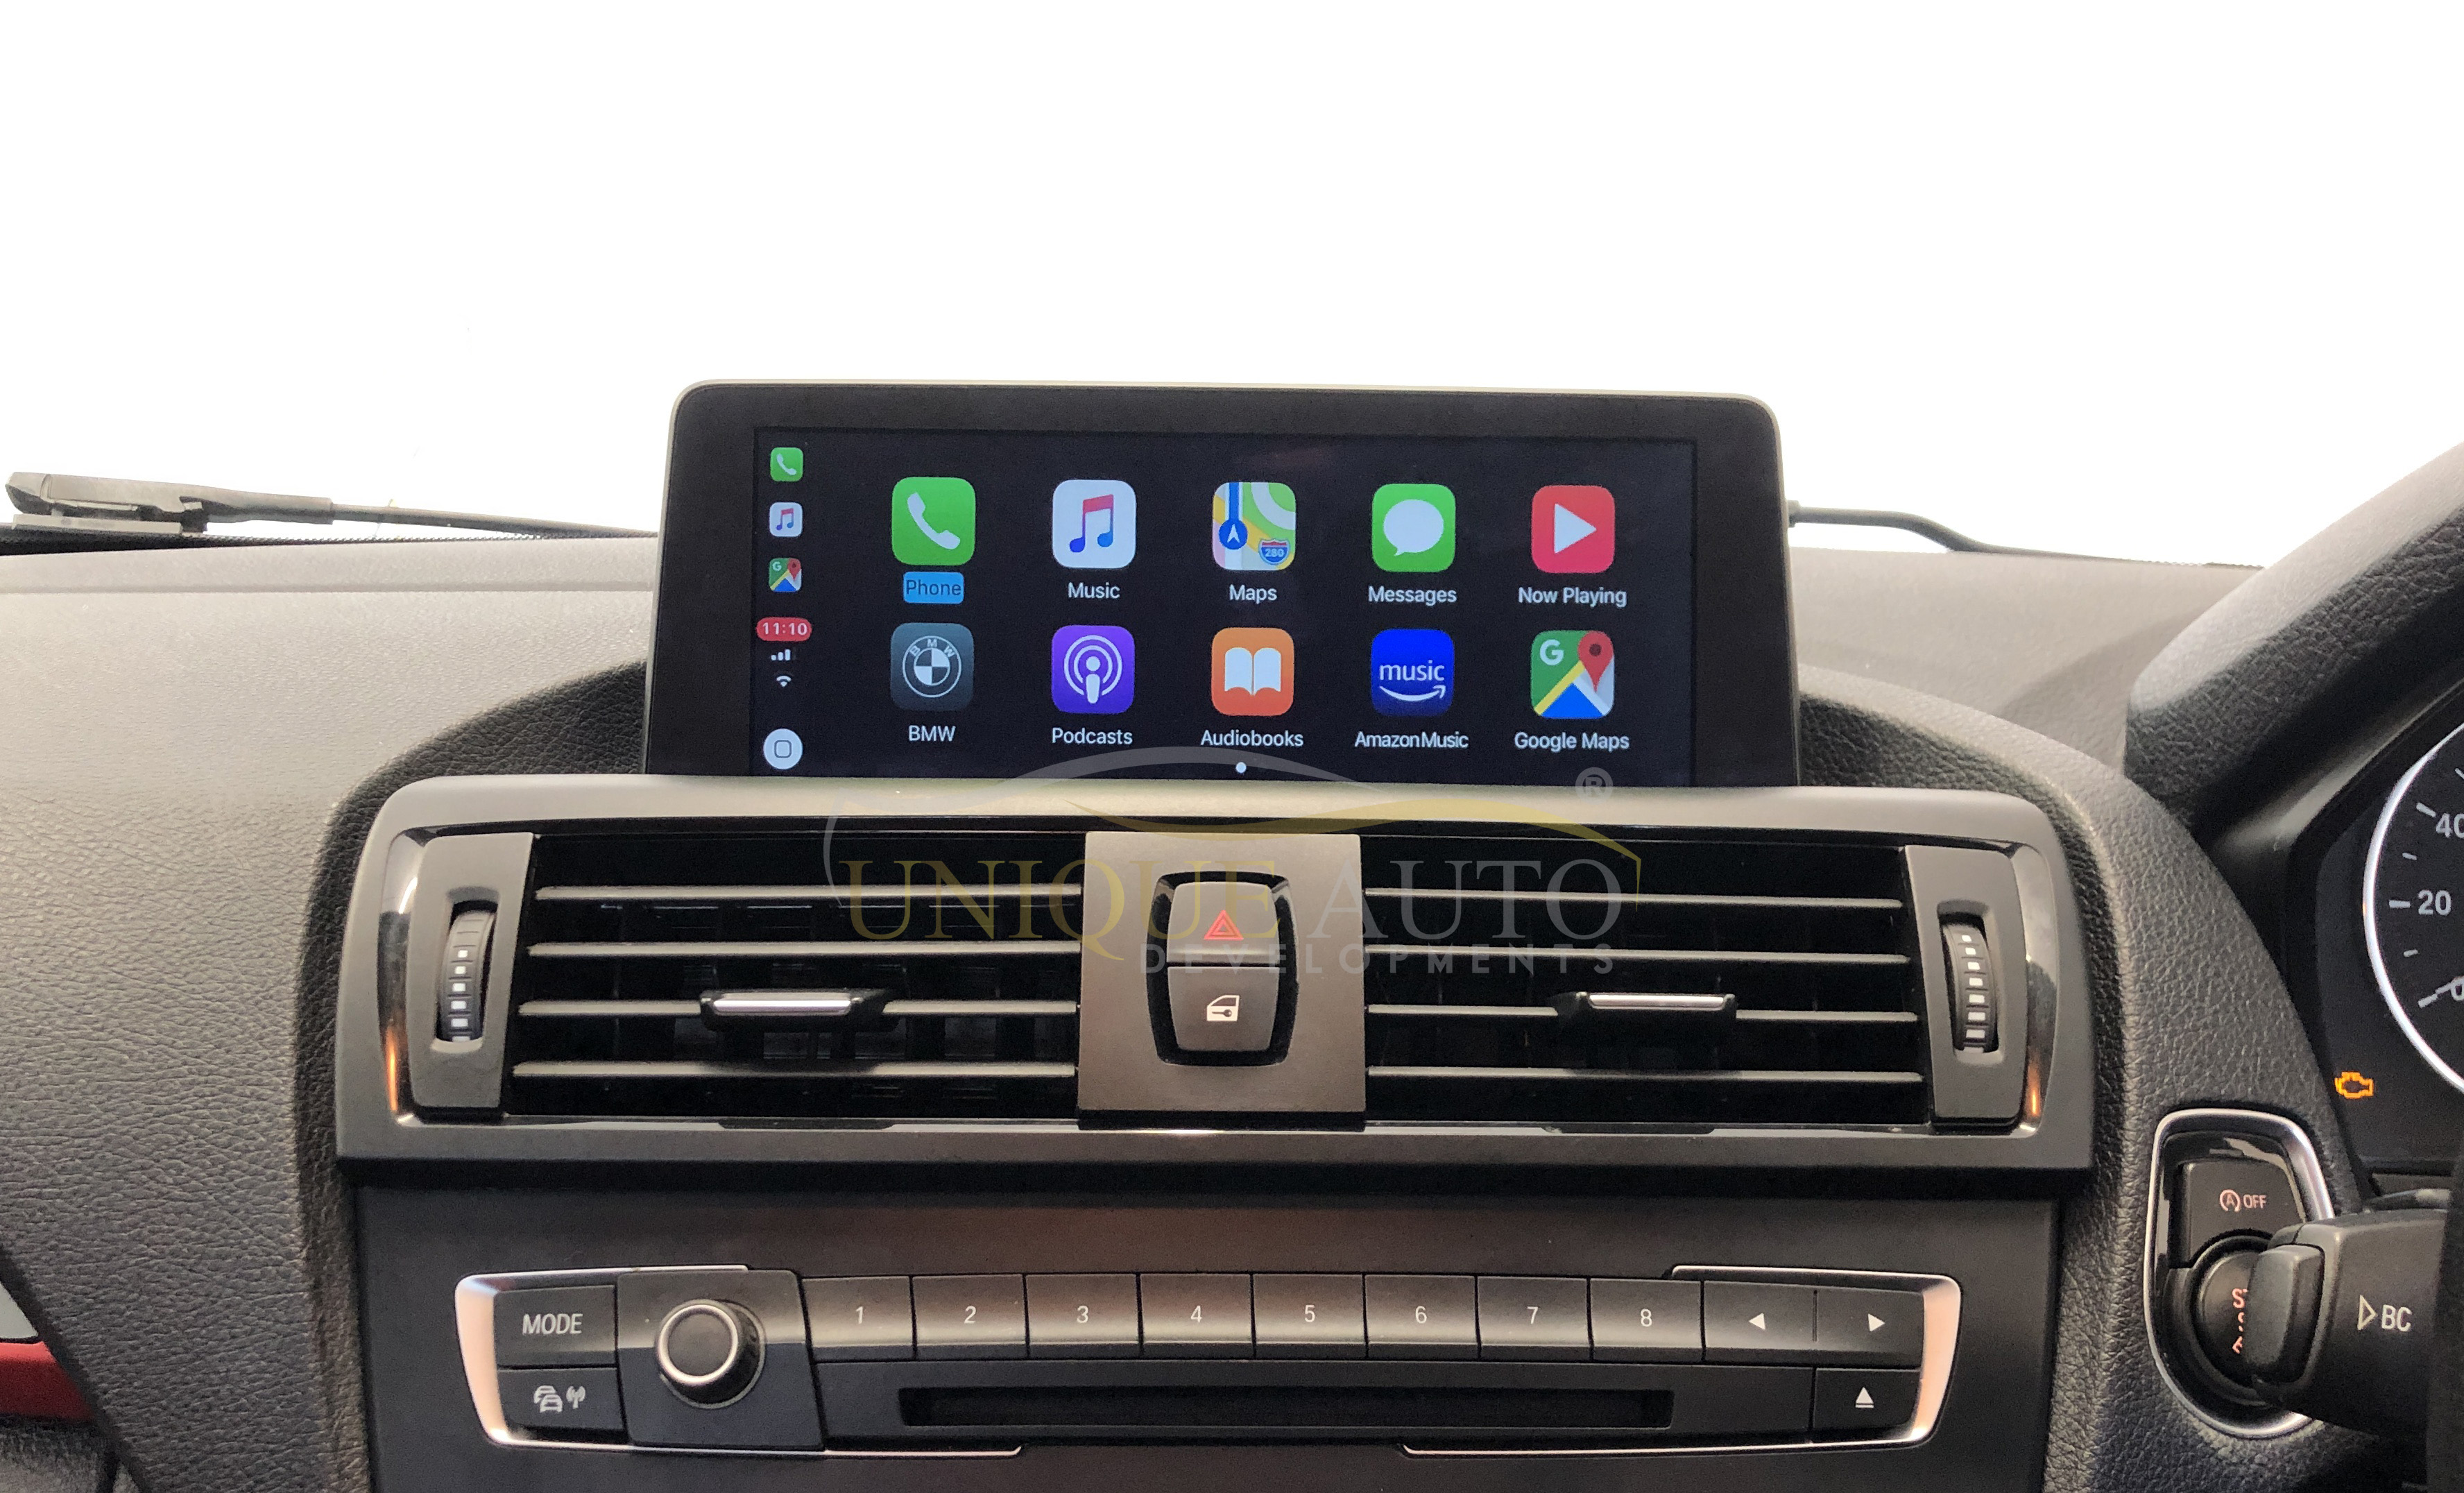 Wireless Apple Carplay Android Auto Bmw Nbt Widescreen 8 8 10 2 F10 F20 F30 1 2 3 4 5 Series 2013 2016 Navigation Camera Interface Unique Auto Developments